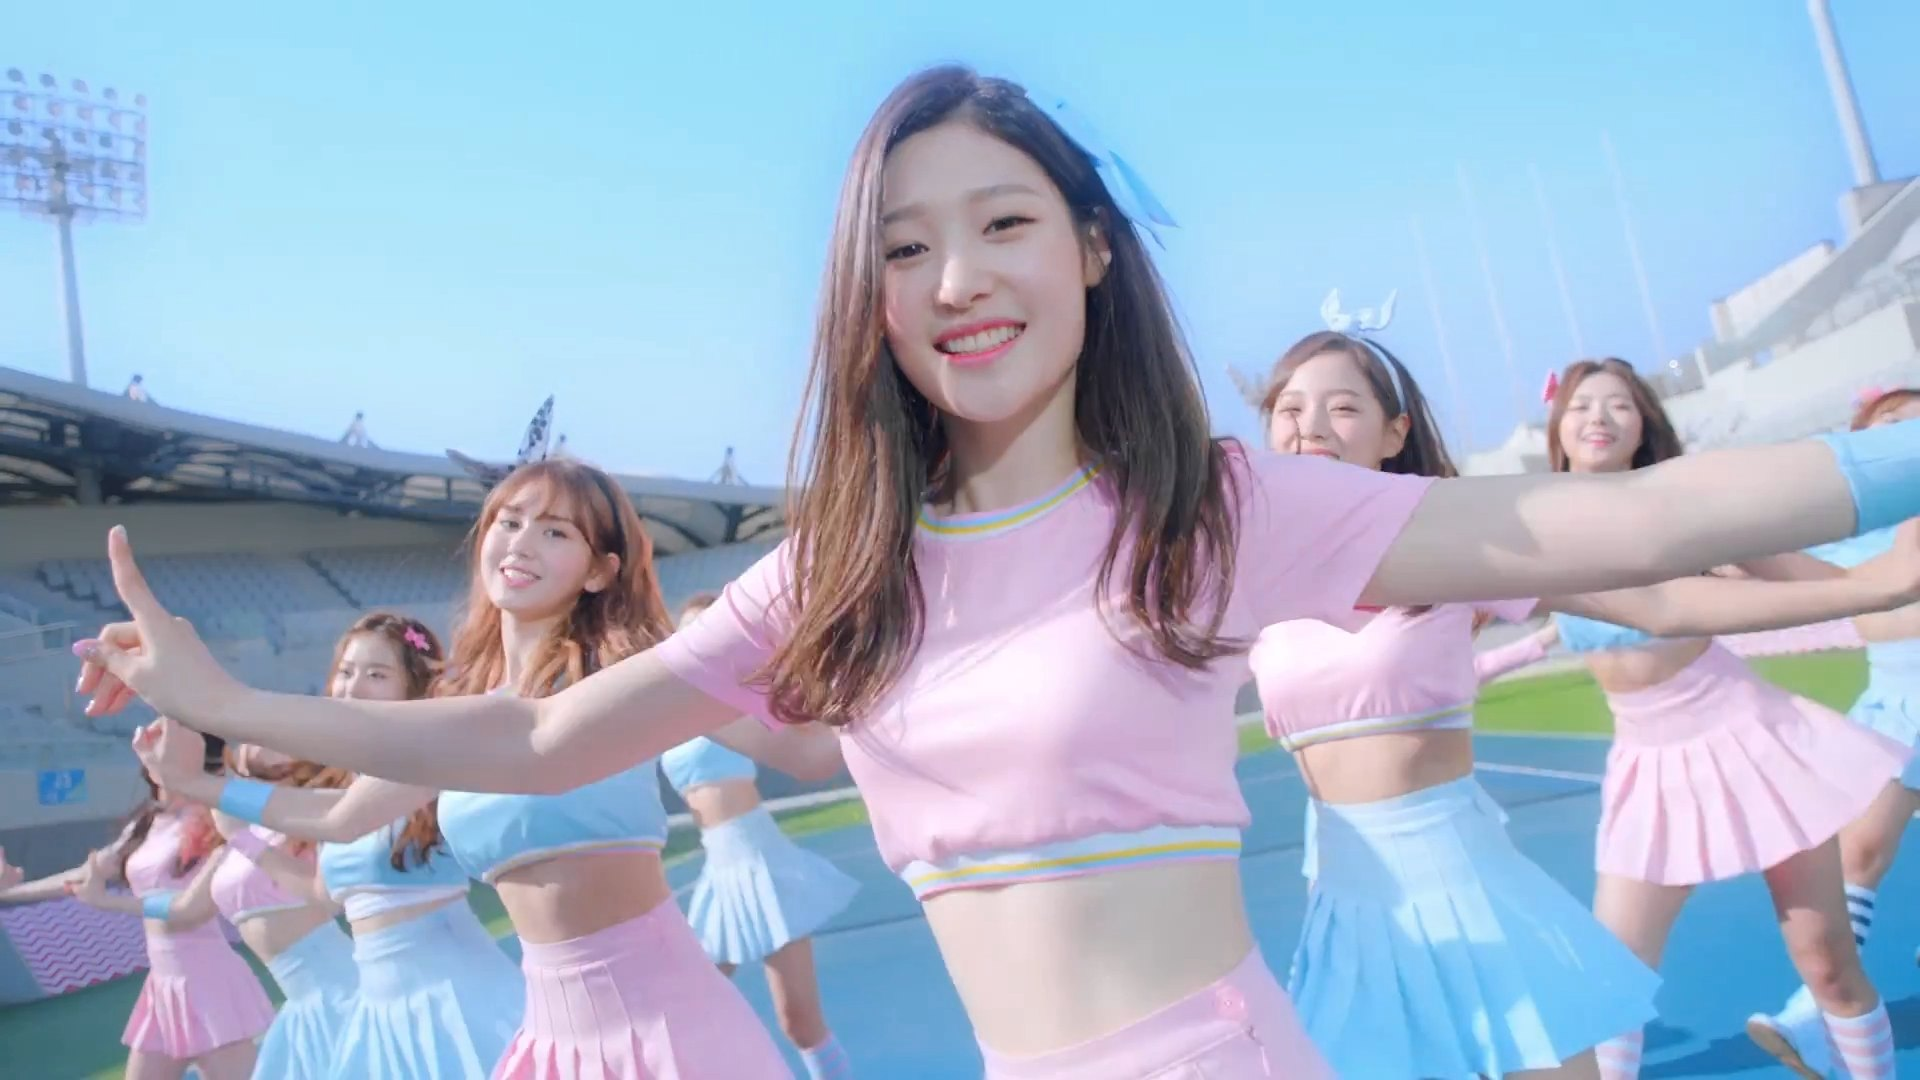 IOI Dream Girls Chaeyeon